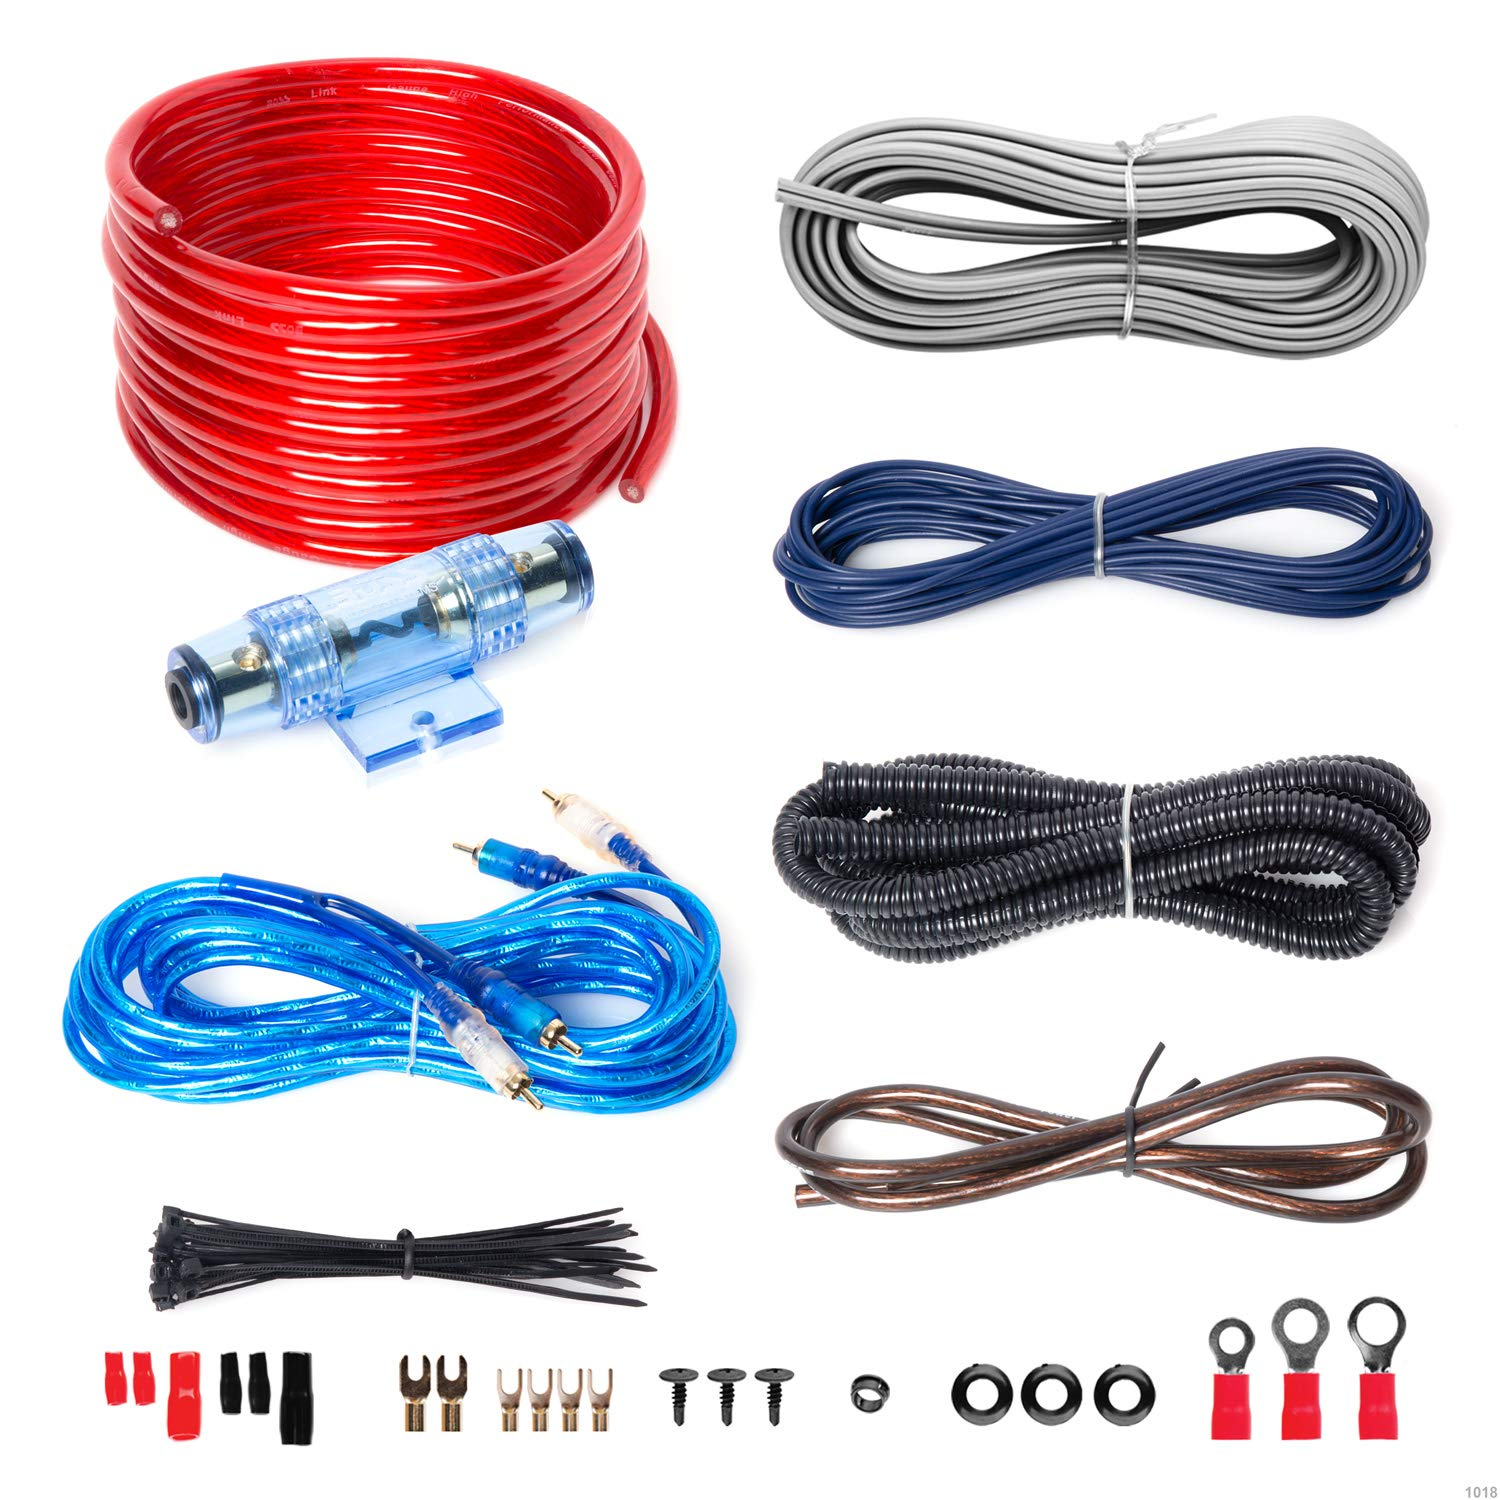 Prime Boss Audio Kit2 8 Gauge Amplifier Installation Wiring Kit A Car Amplifier Wiring Kit Helps You Make Connections And Brings Power To Your Radio Wiring Cloud Staixuggs Outletorg